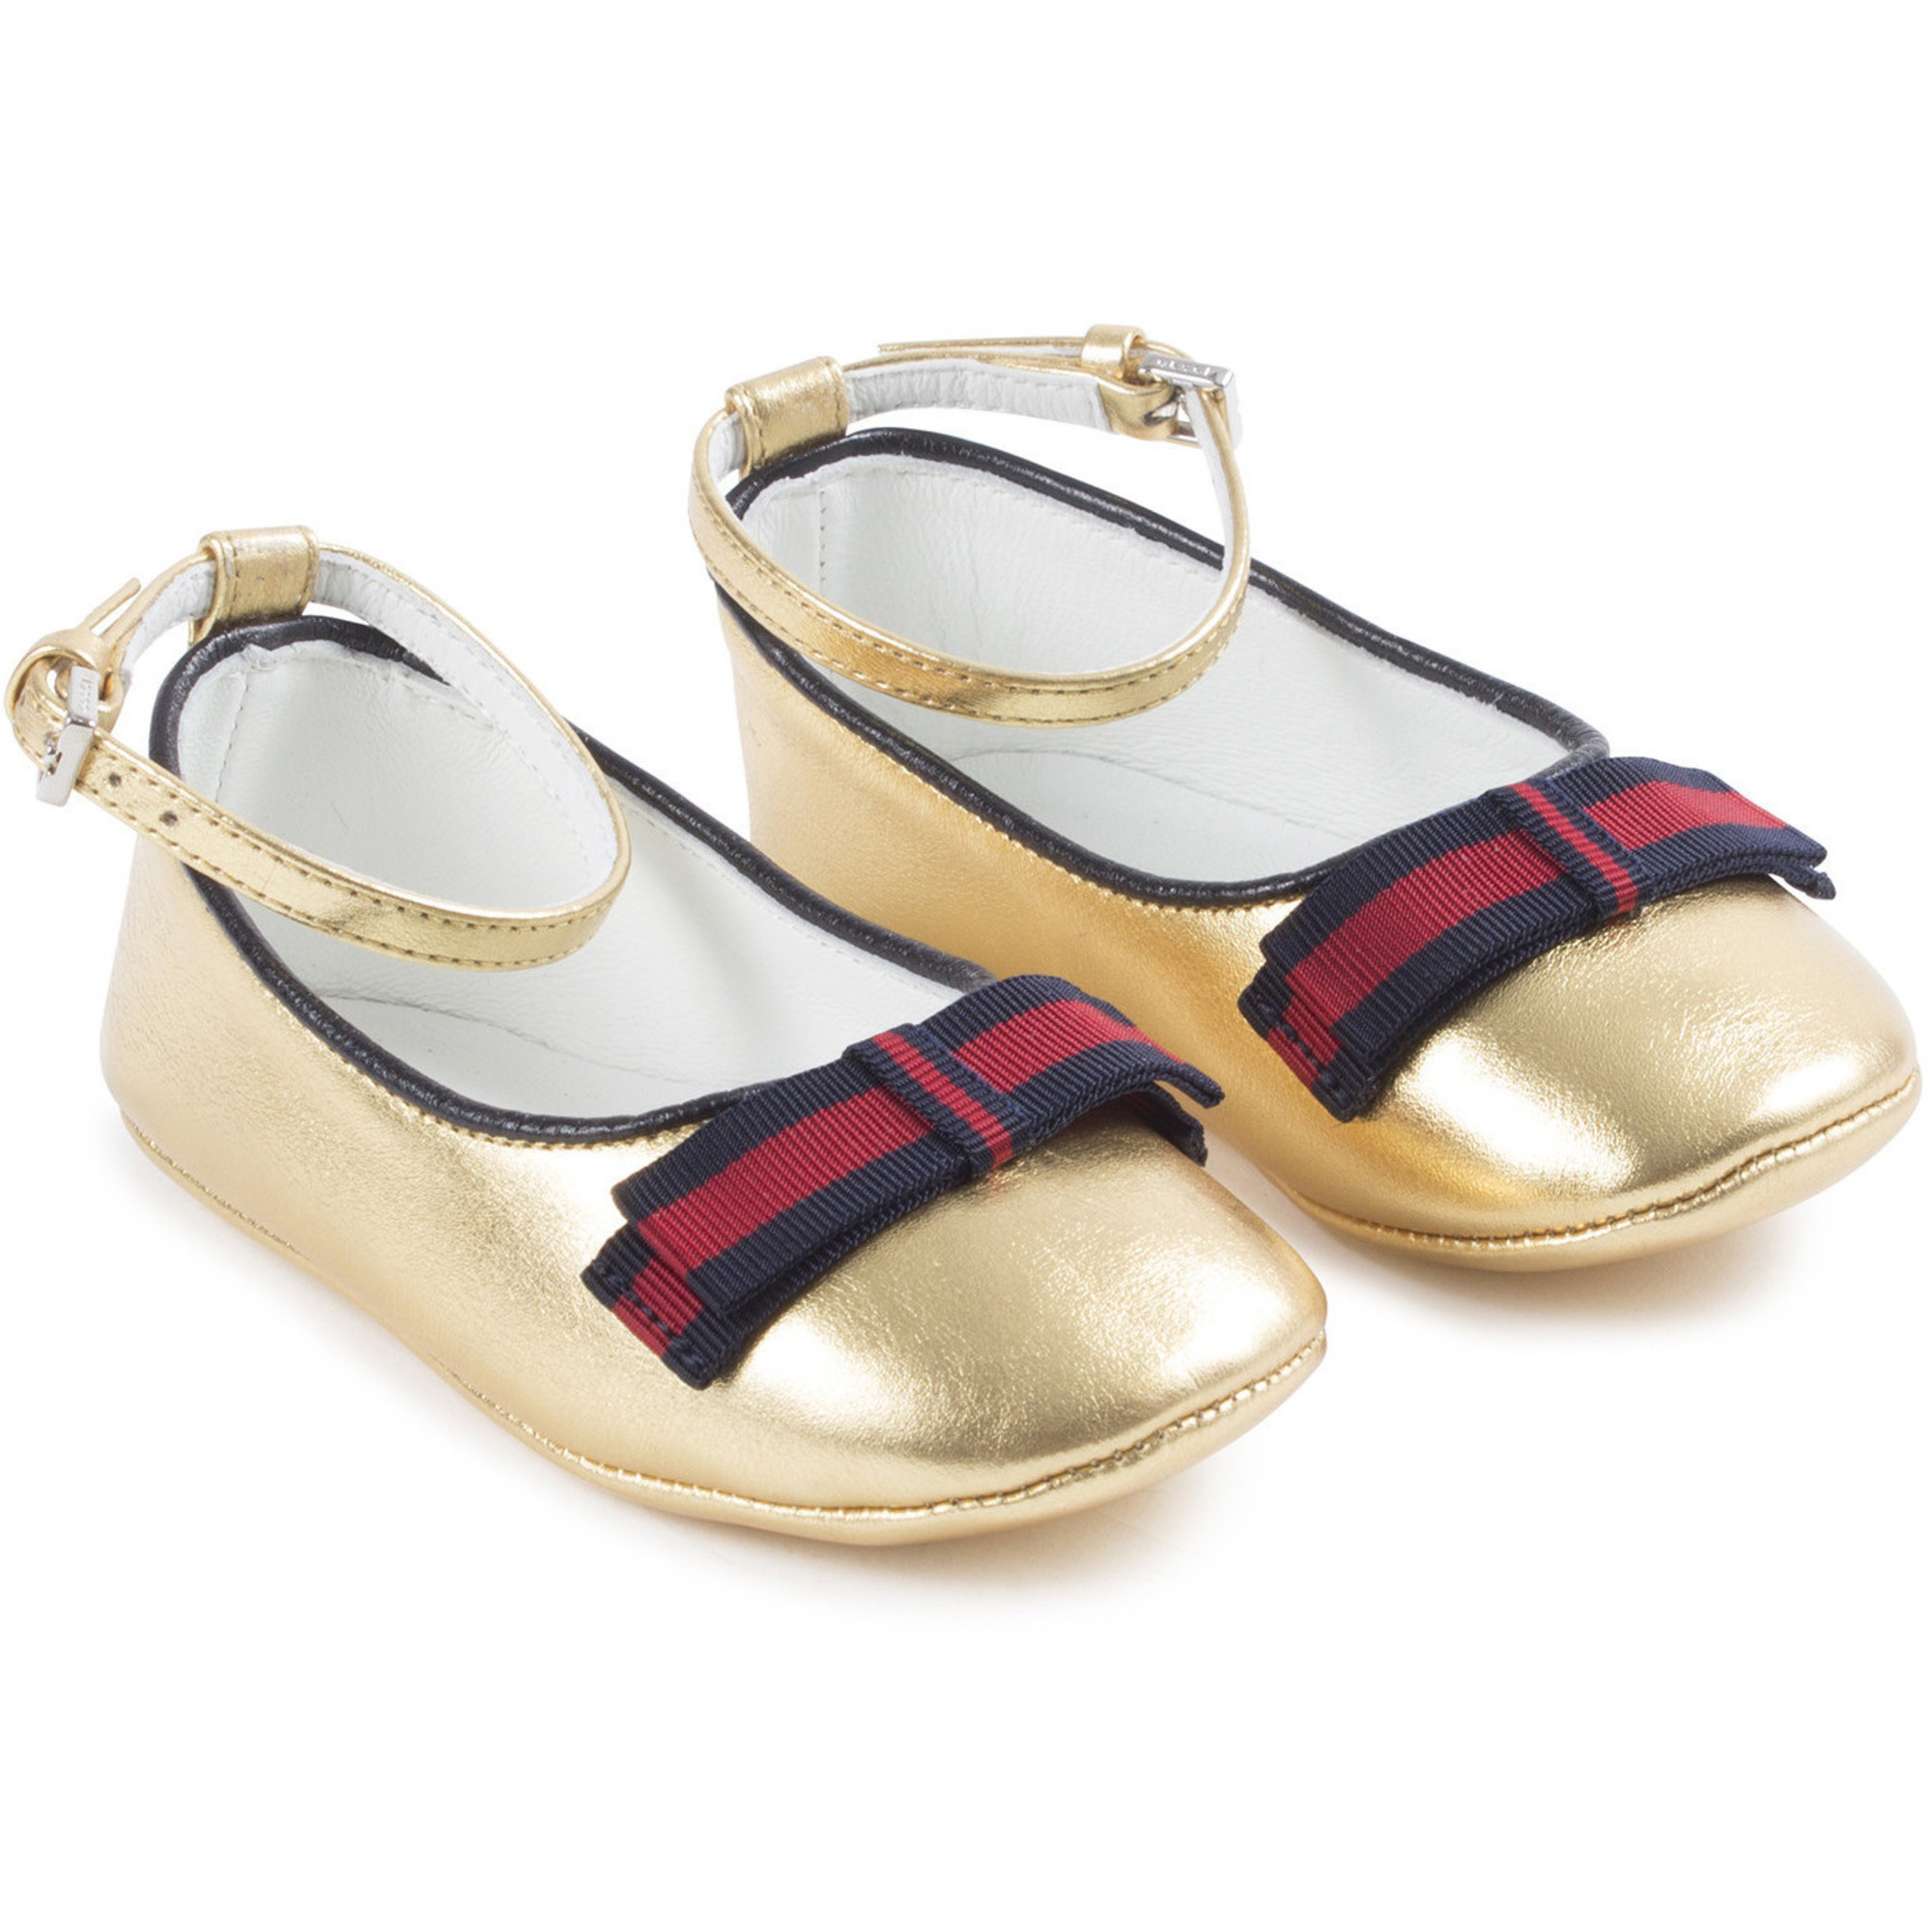 Gucci Baby Ballerina Shoes in Gold with